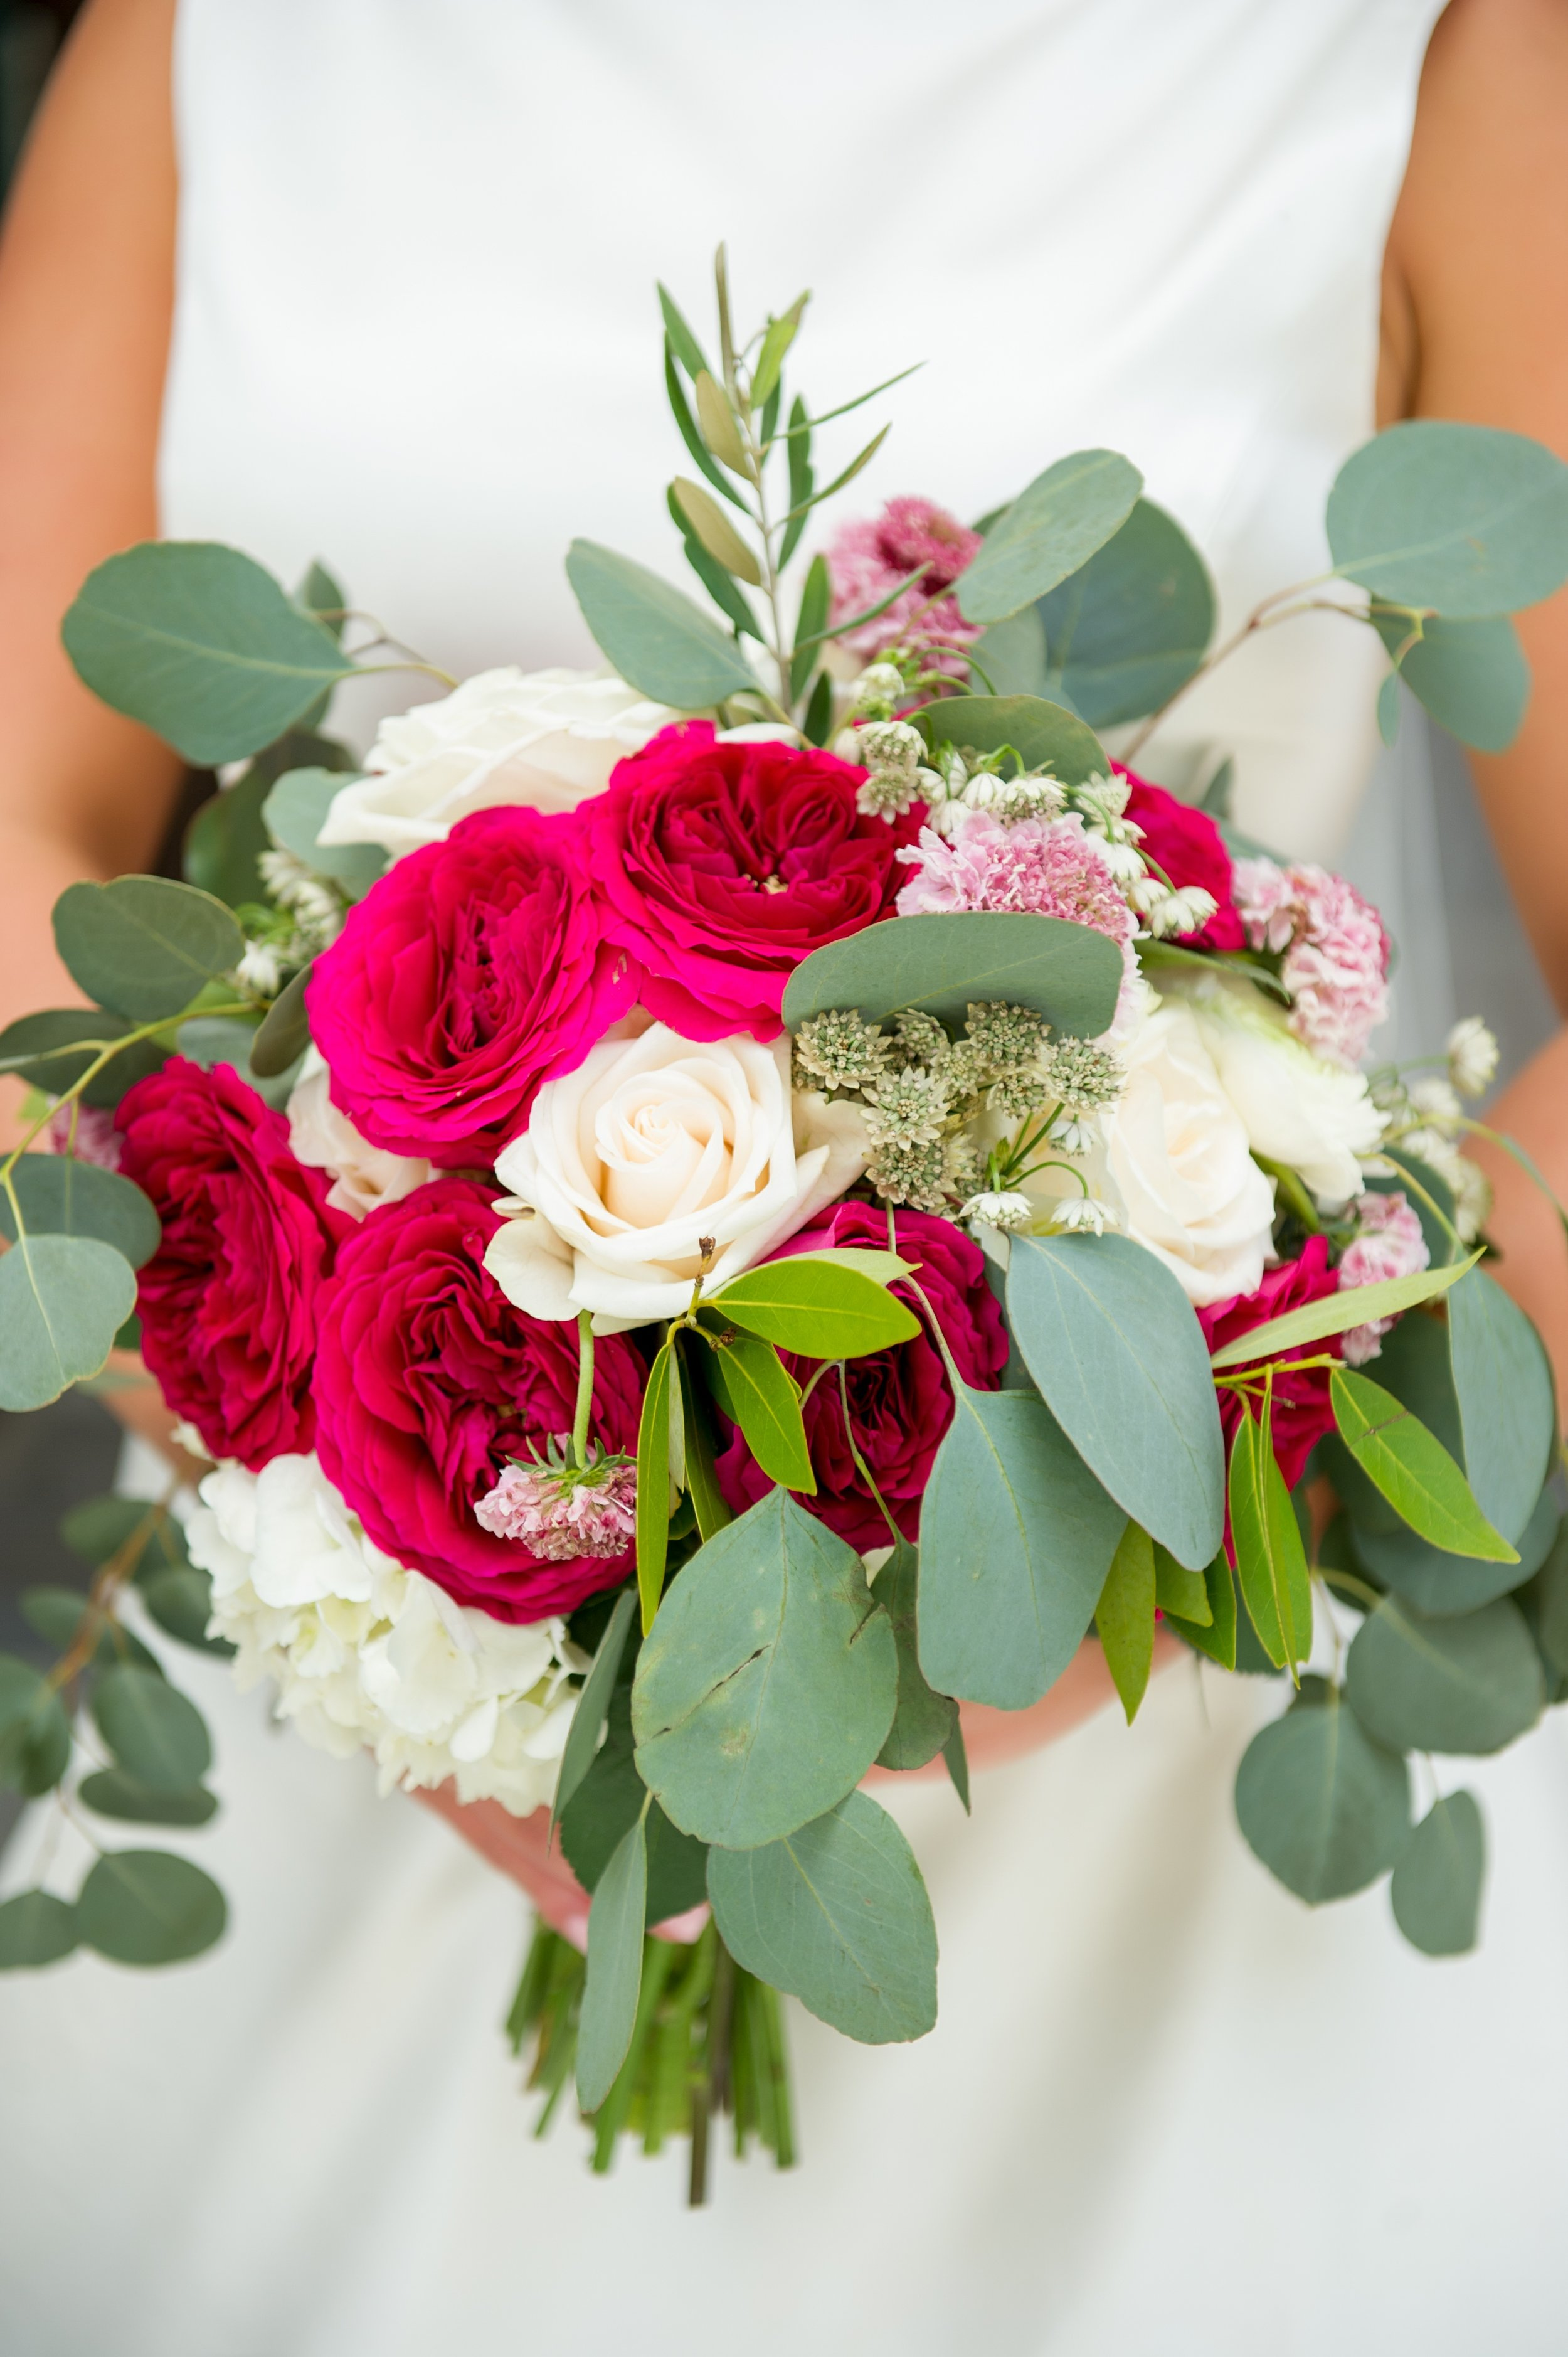 The bride's bouquet consisted of ivory roses, white hydrangea, red garden roses, pink scabiosa, leafy eucalyptus and sage, and delicate Queen Anne's lace (gorgeous!)